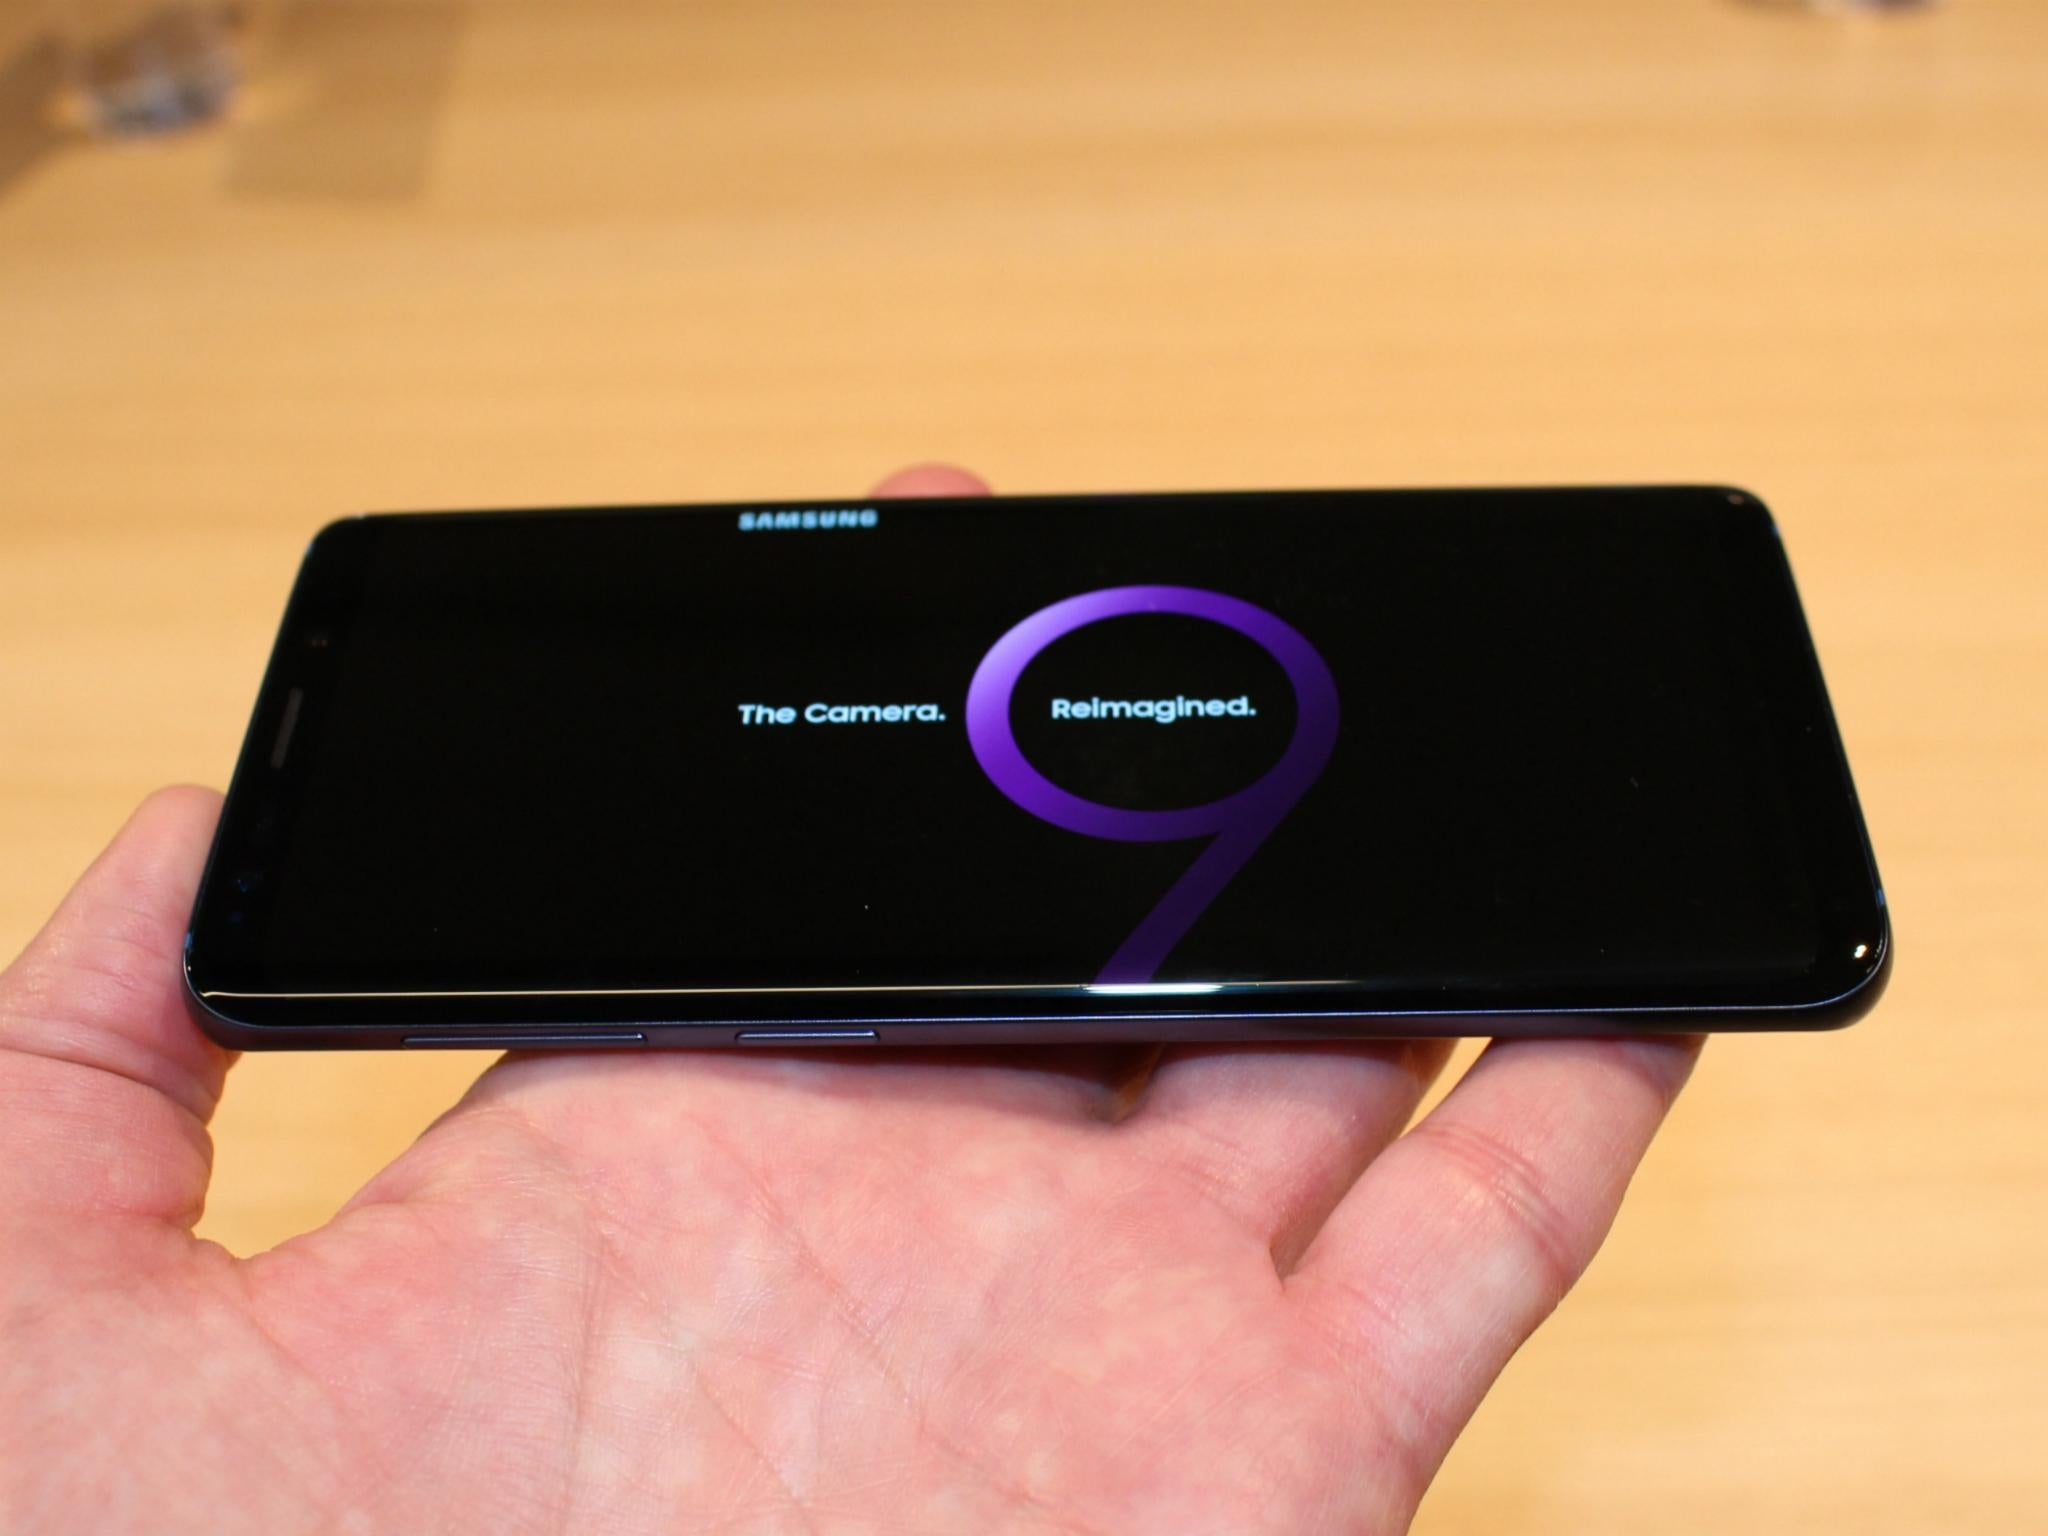 Samsung Galaxy S9: Price, release date, specs – everything